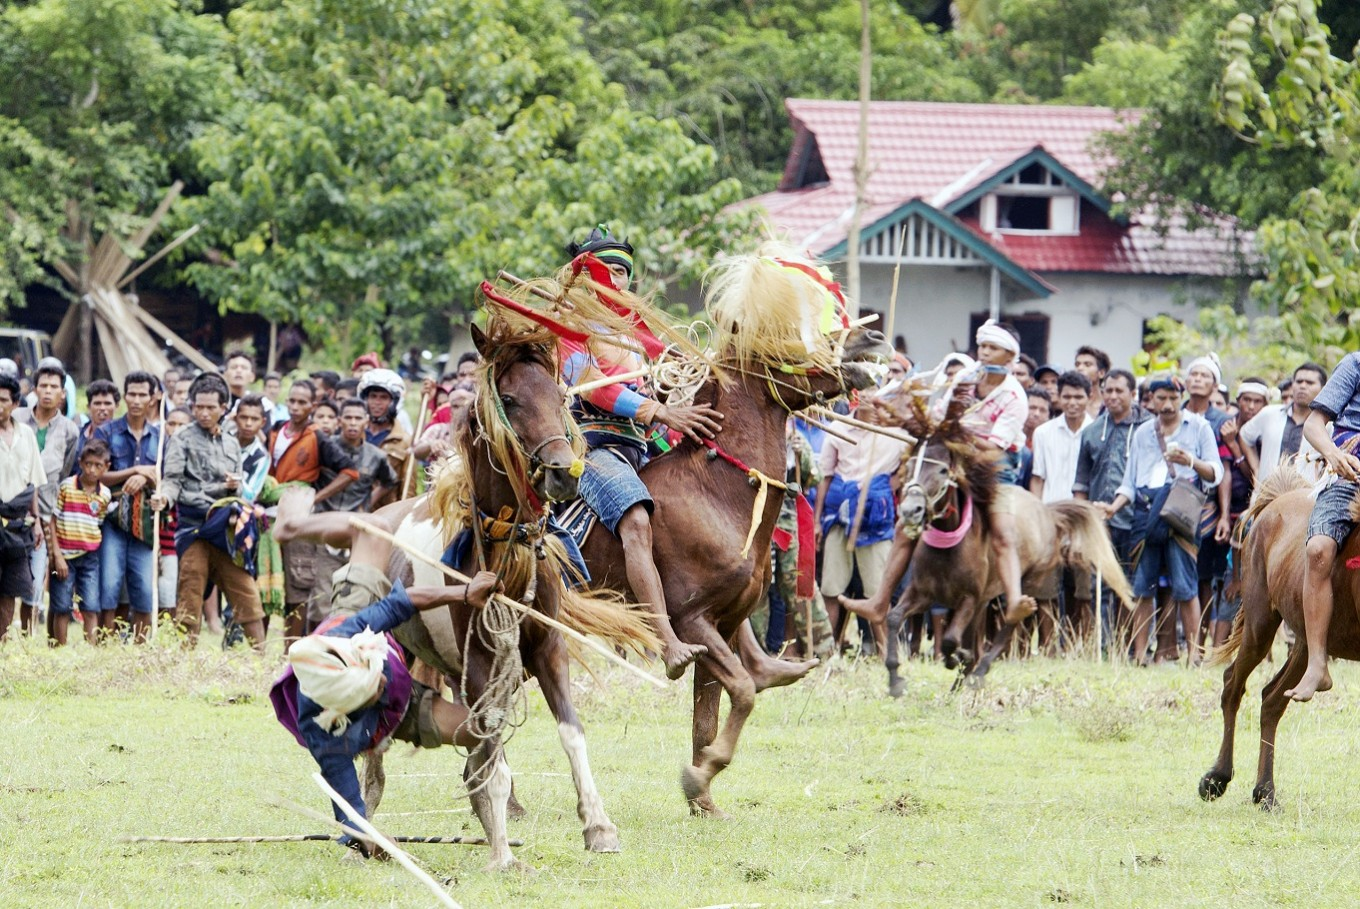 Dangerous: The ritual is conducted by throwing wooden spears at an opponent while riding a horse, and at times, accidents happen.